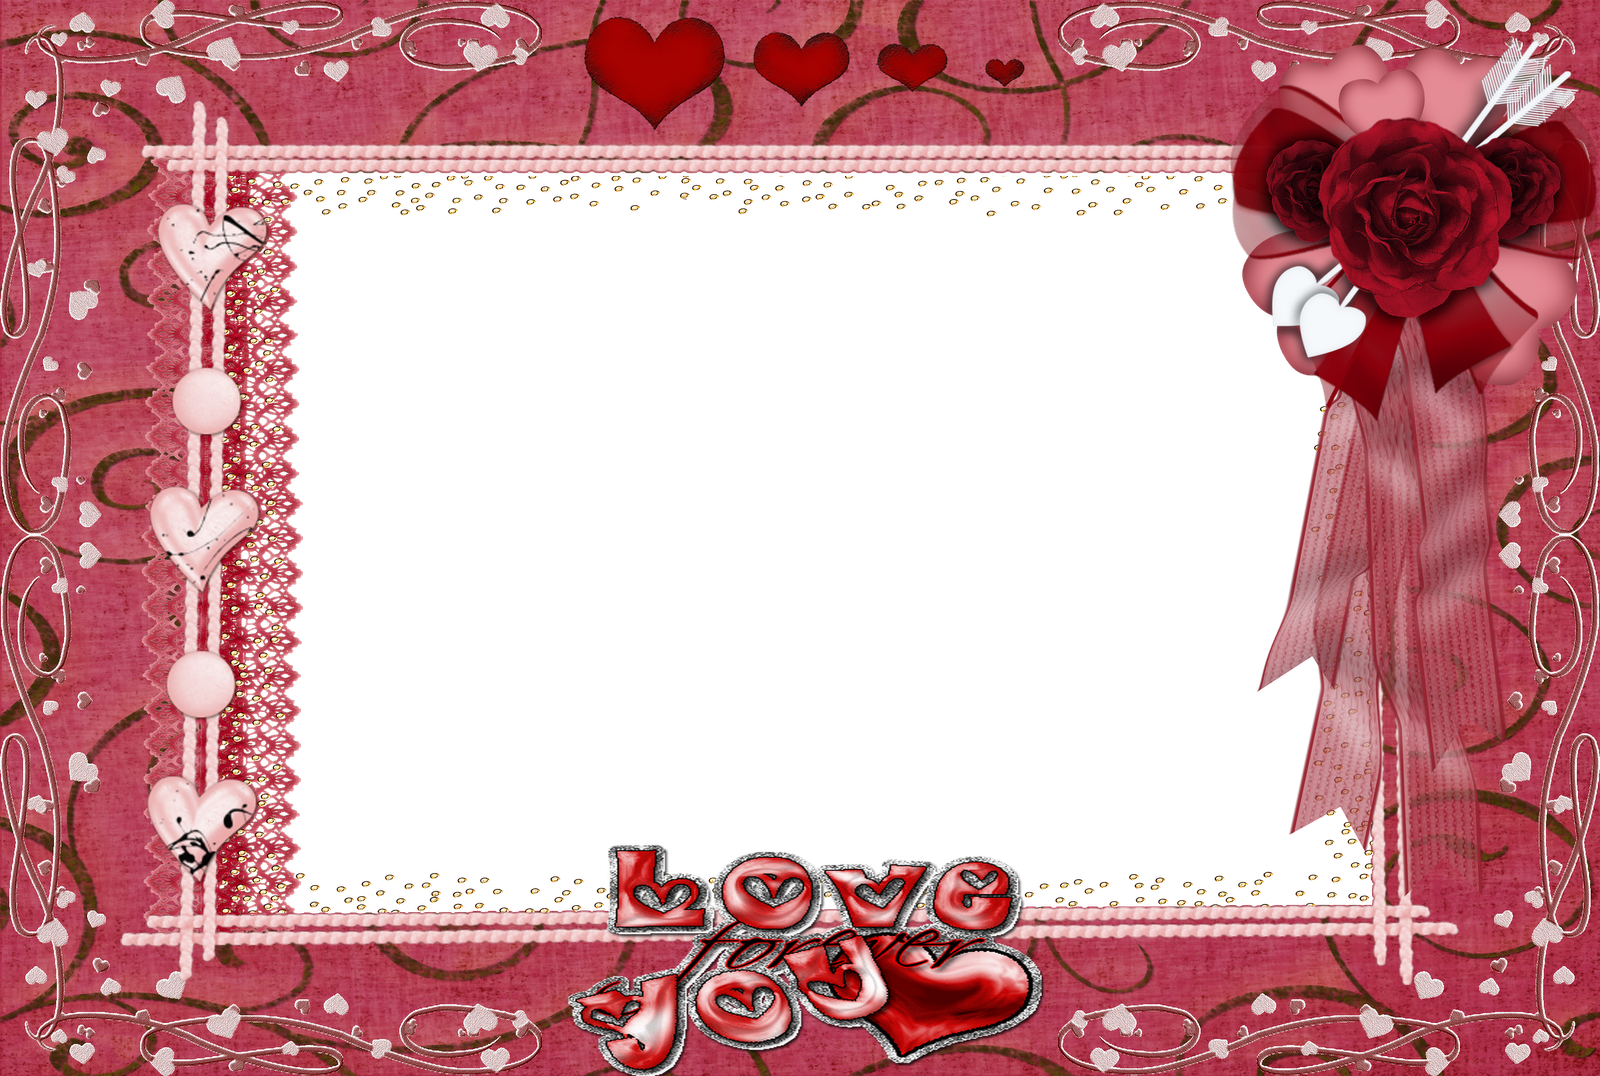 Central photoshop frames png mix 4 for Love in design